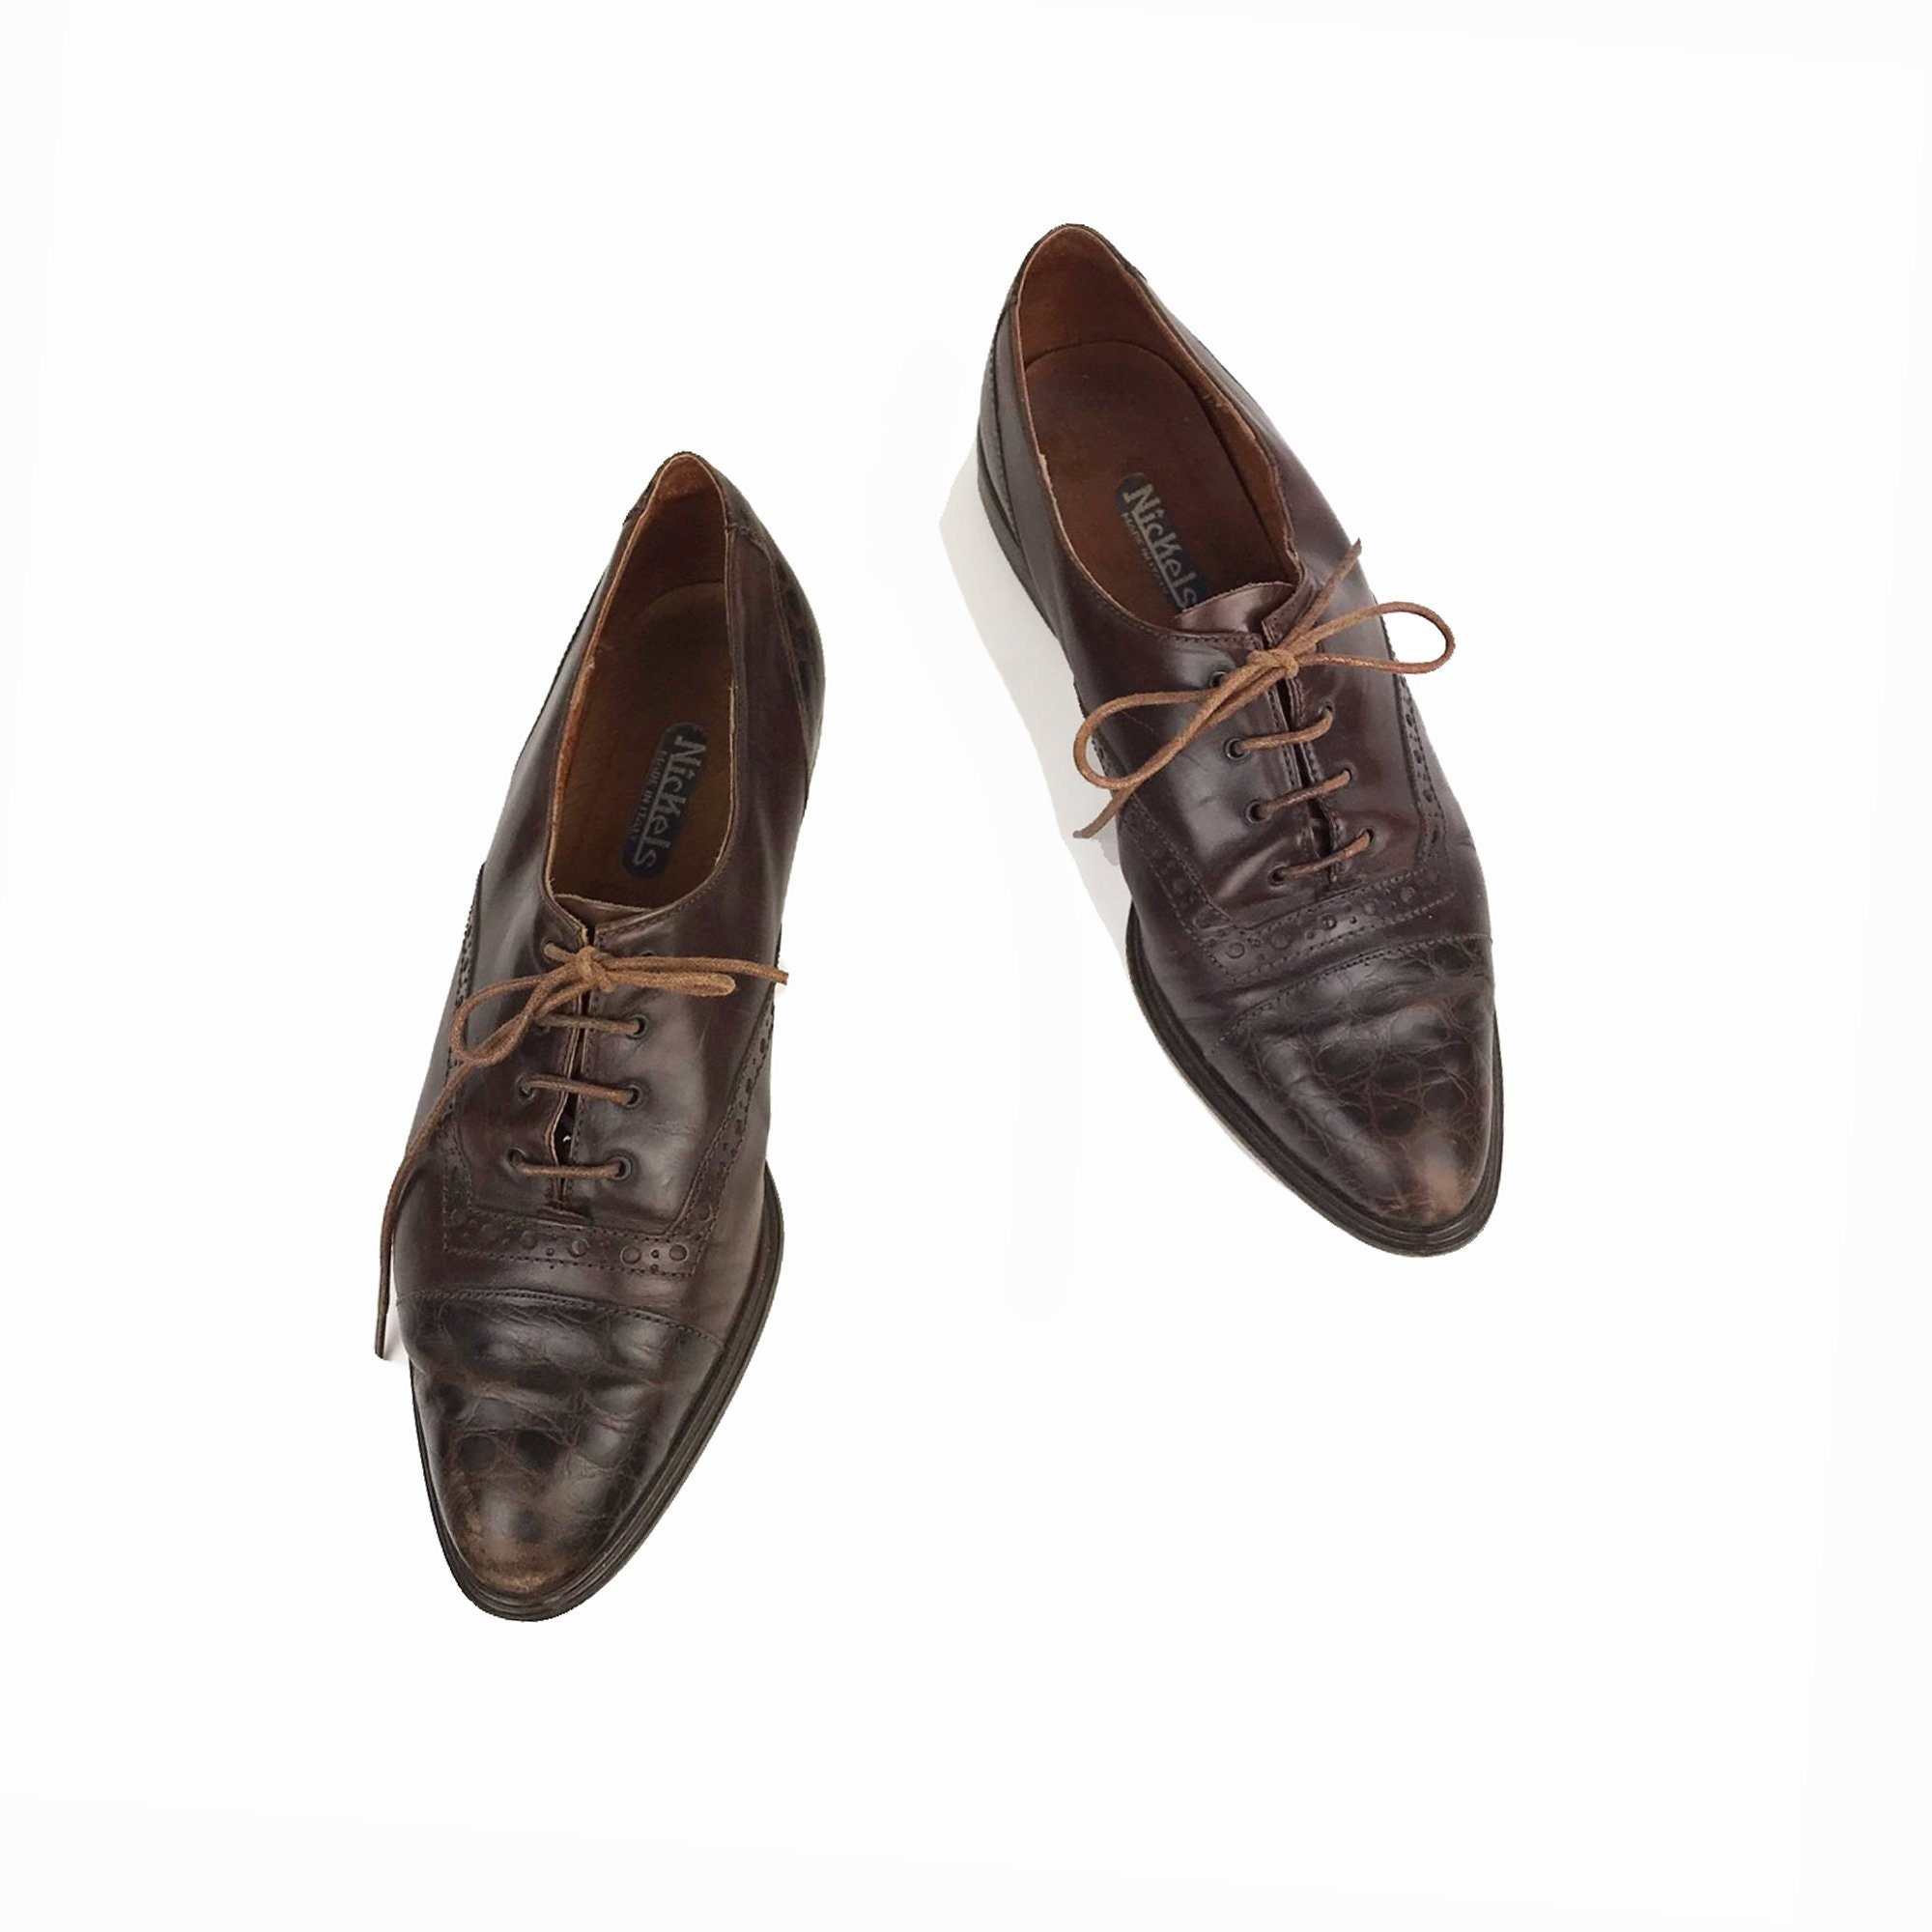 Vintage 90s Italian Leather Oxfords Womens Lace Up Brogues